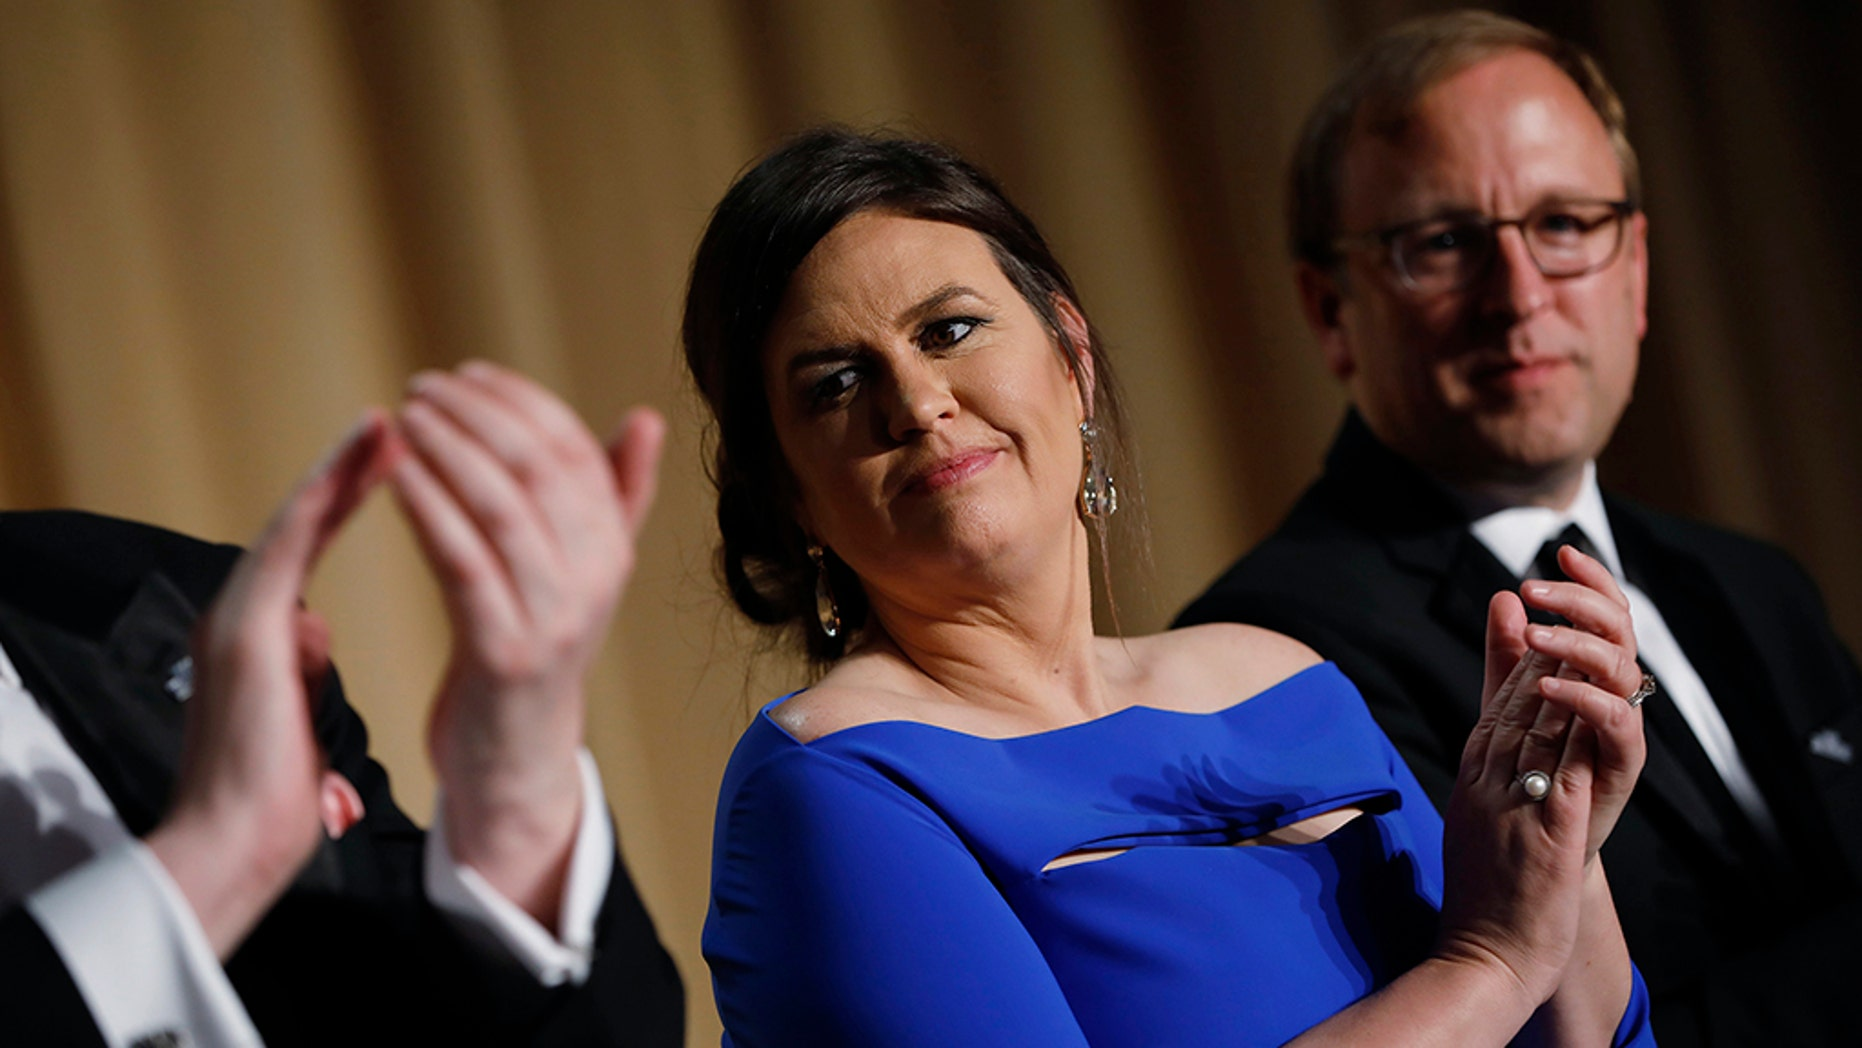 White House Press Secretary Sarah Huckabee Sanders is seen at the White House Correspondents' Association dinner in Washington, U.S., April 28, 2018. REUTERS/Aaron P. Bernstein - HP1EE4U104CHW